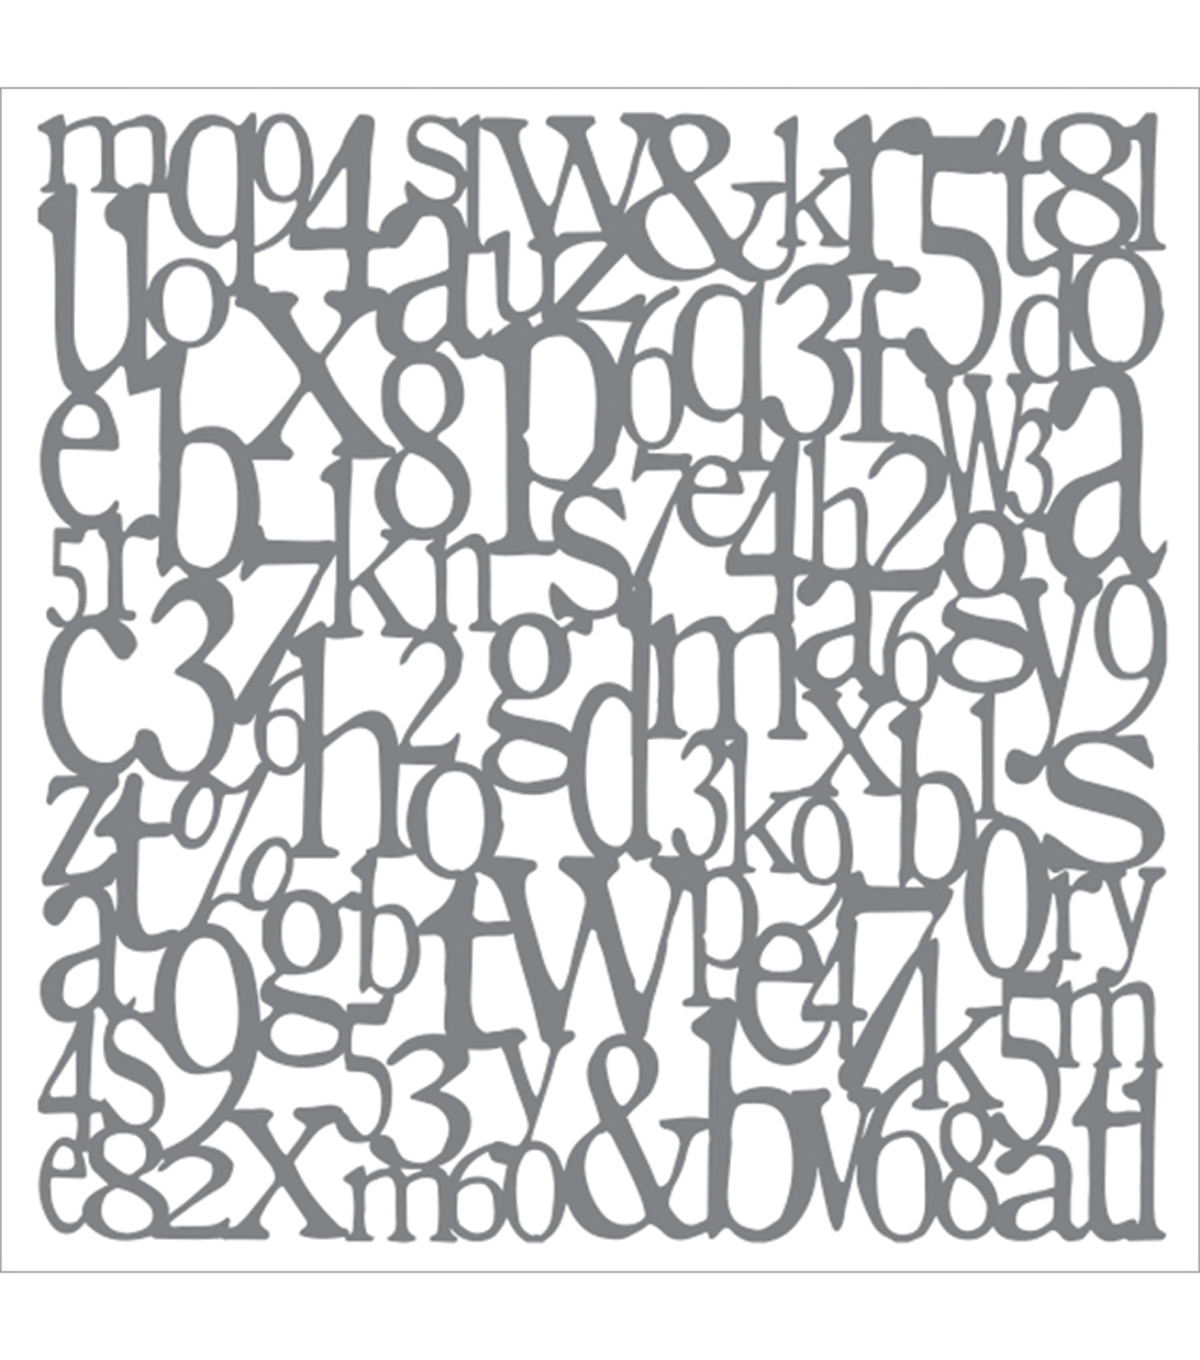 DecoArt® Andy Skinner Mixed Media 8\u0027\u0027x8\u0027\u0027 Stencil-Alphabet Spaghetti